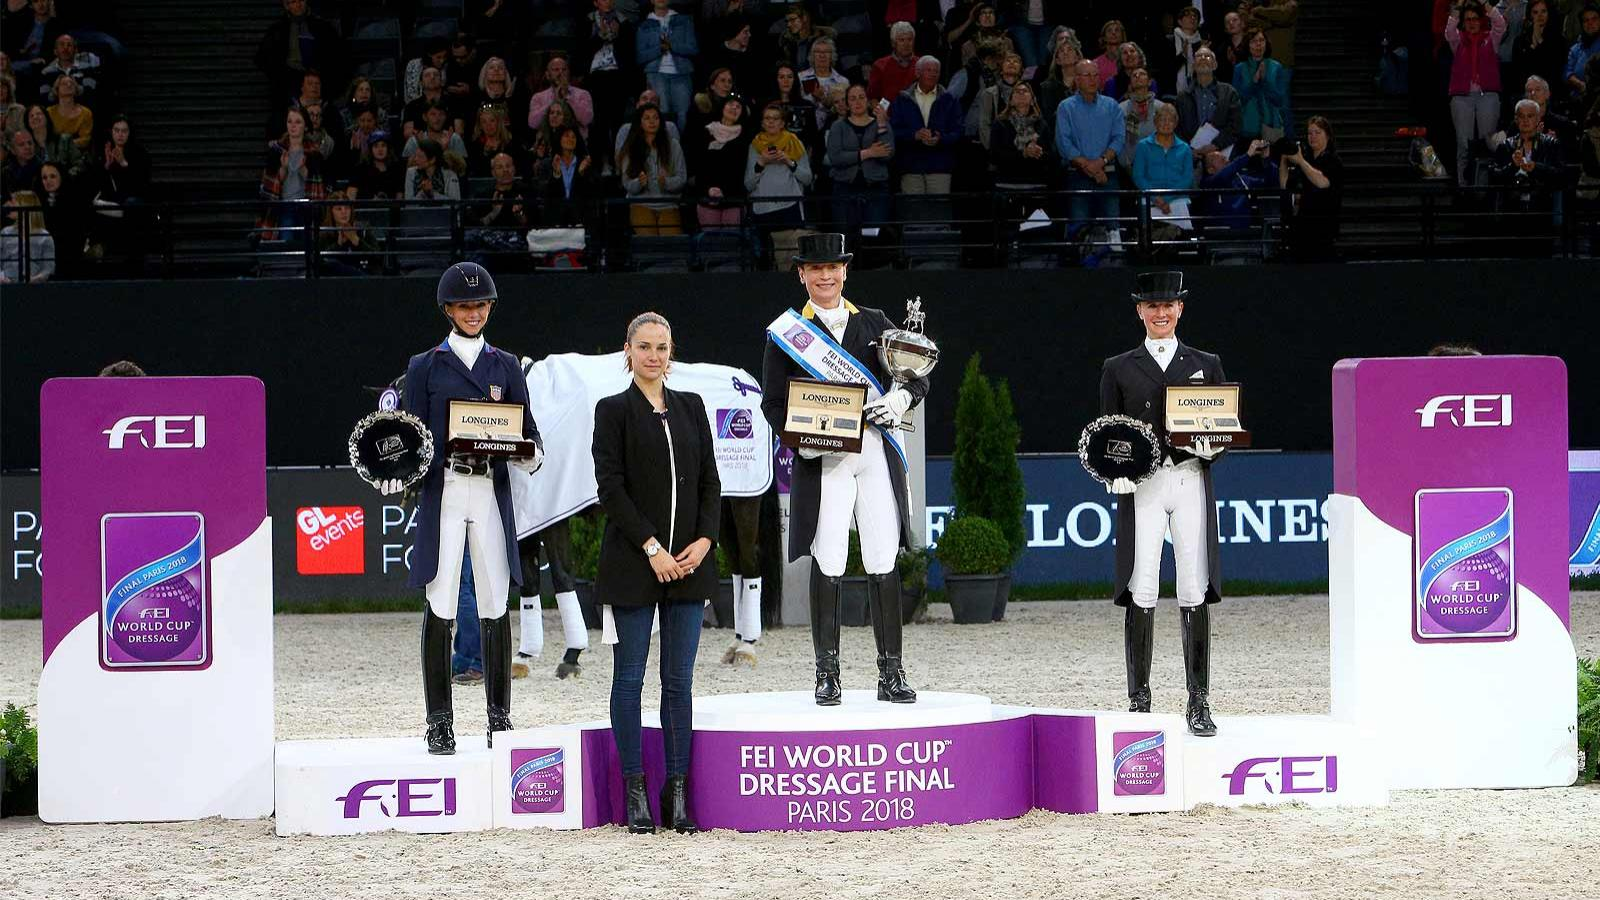 Germany; Isabell Werth; Weihegold OLD; 2018 FEI World Cup Dressage Final